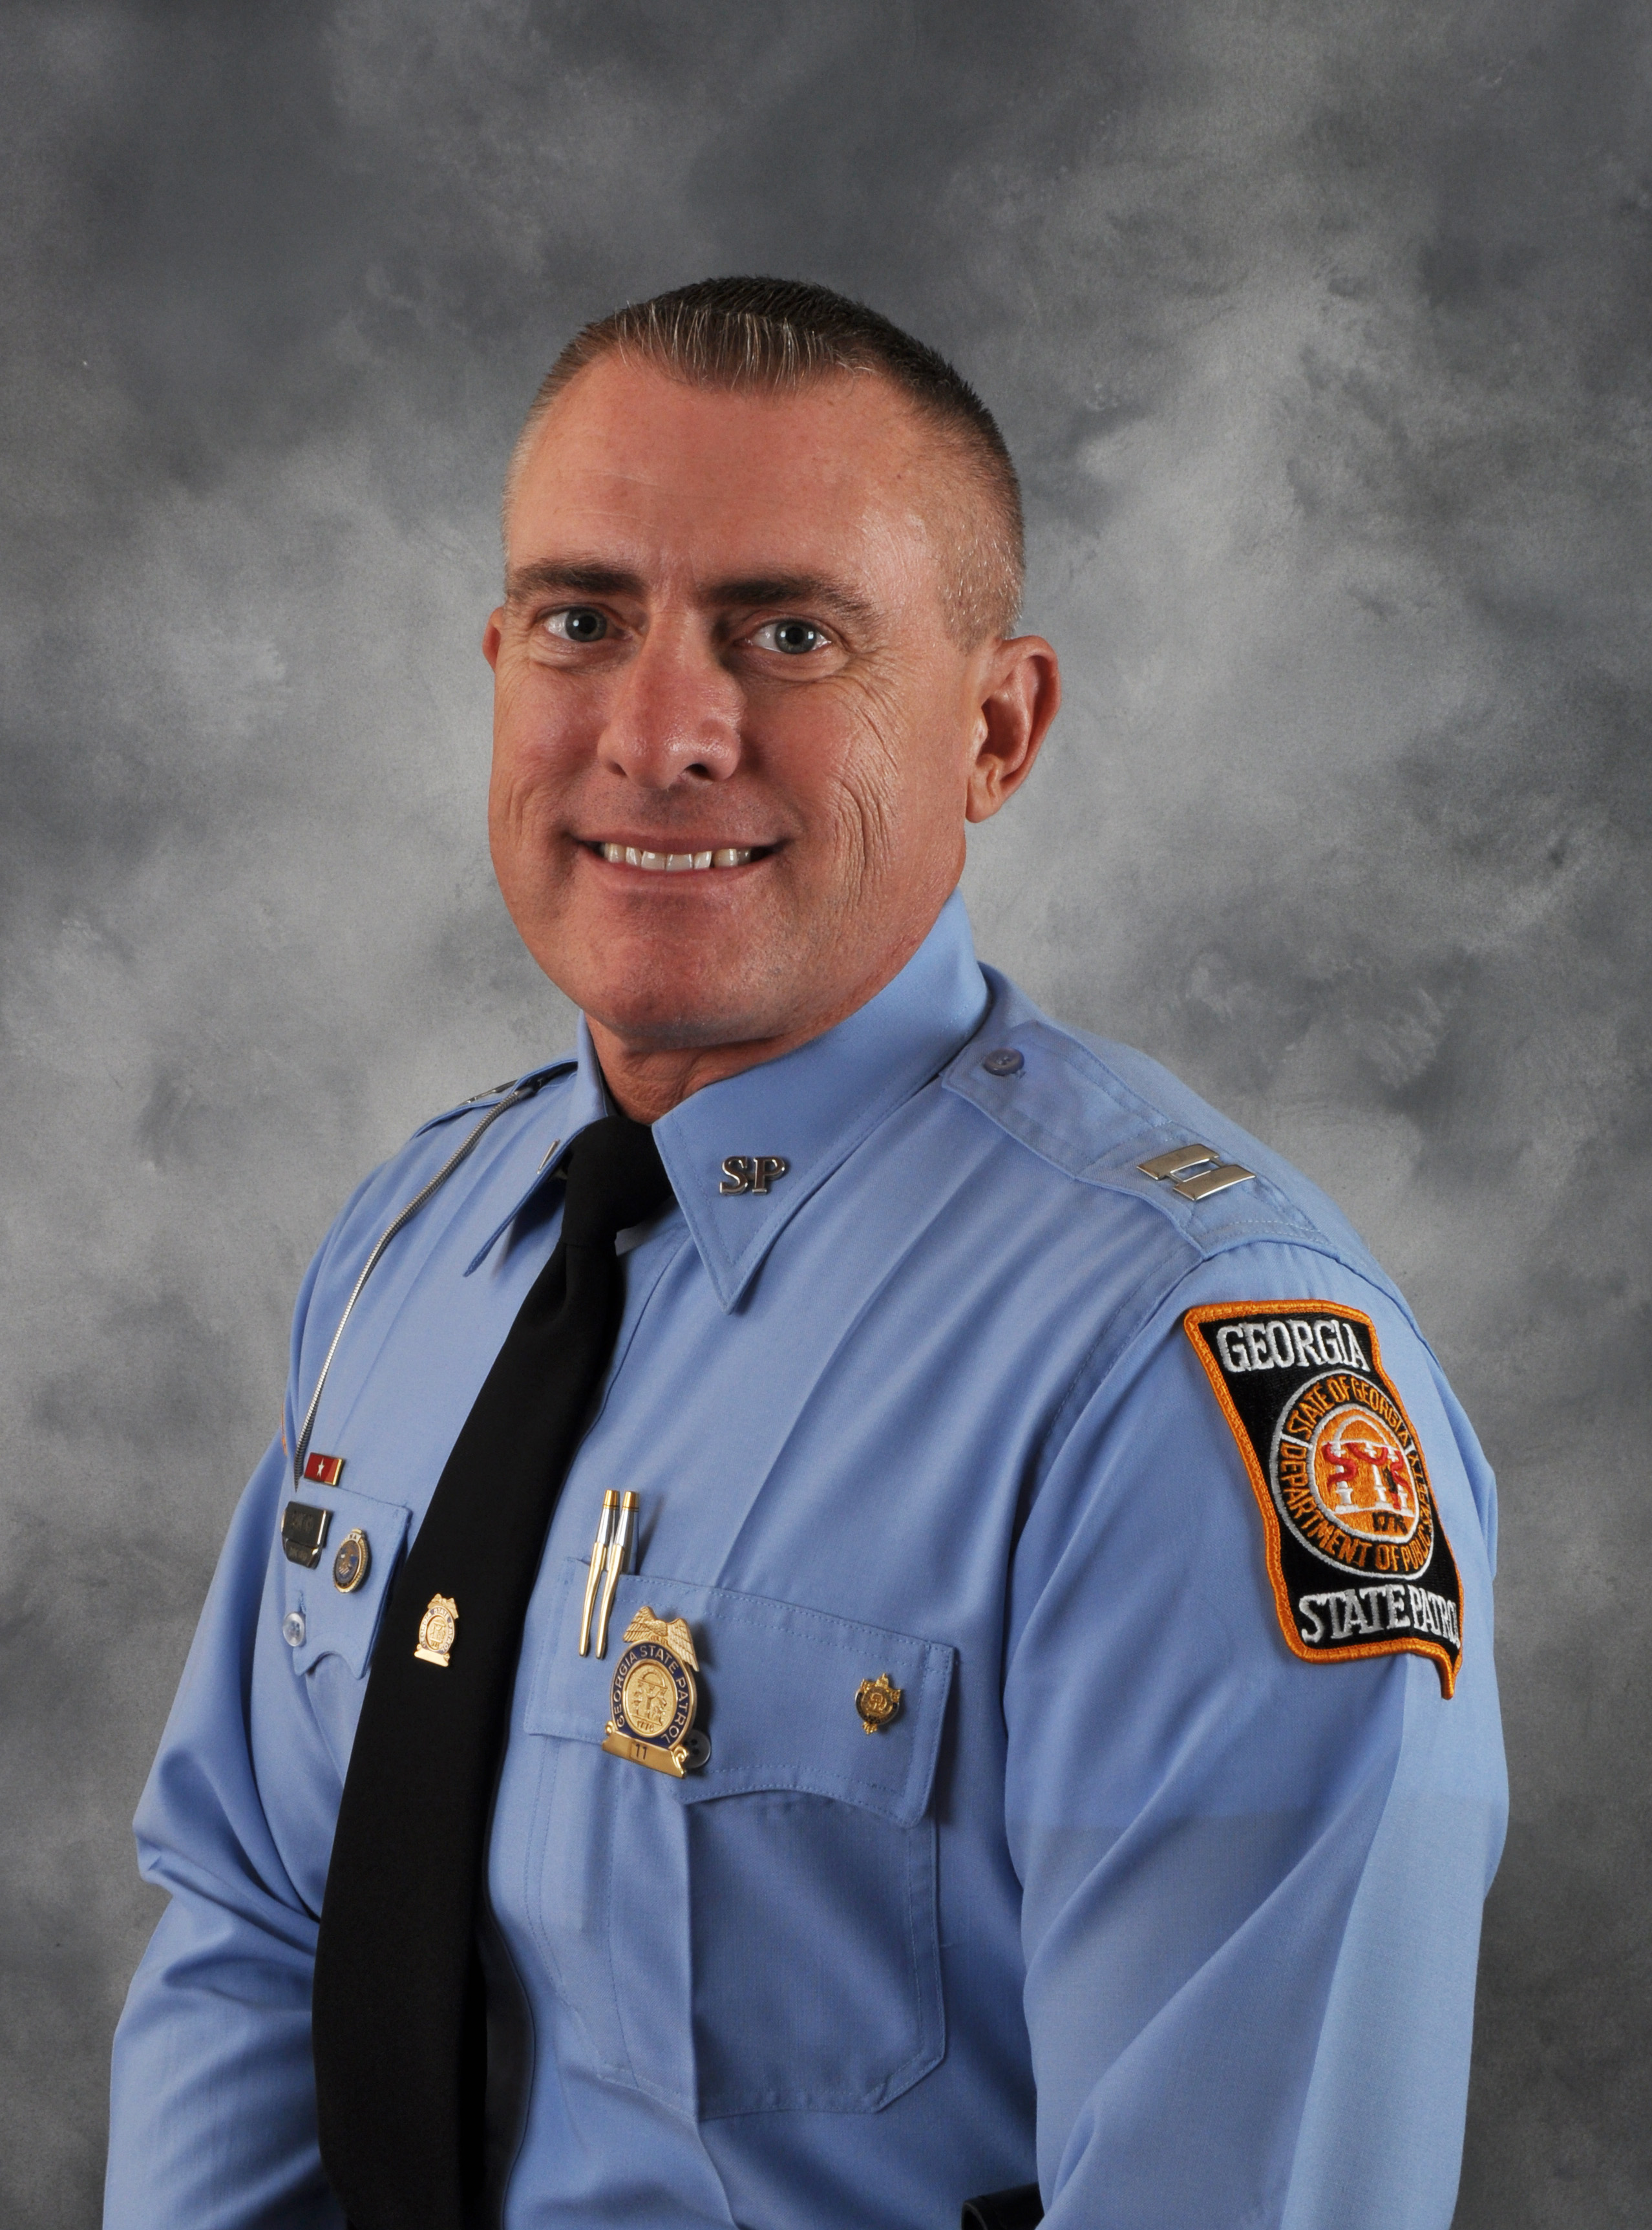 Grady Sanford Appointed to Commander of GSP Troop A Operations  WBHF